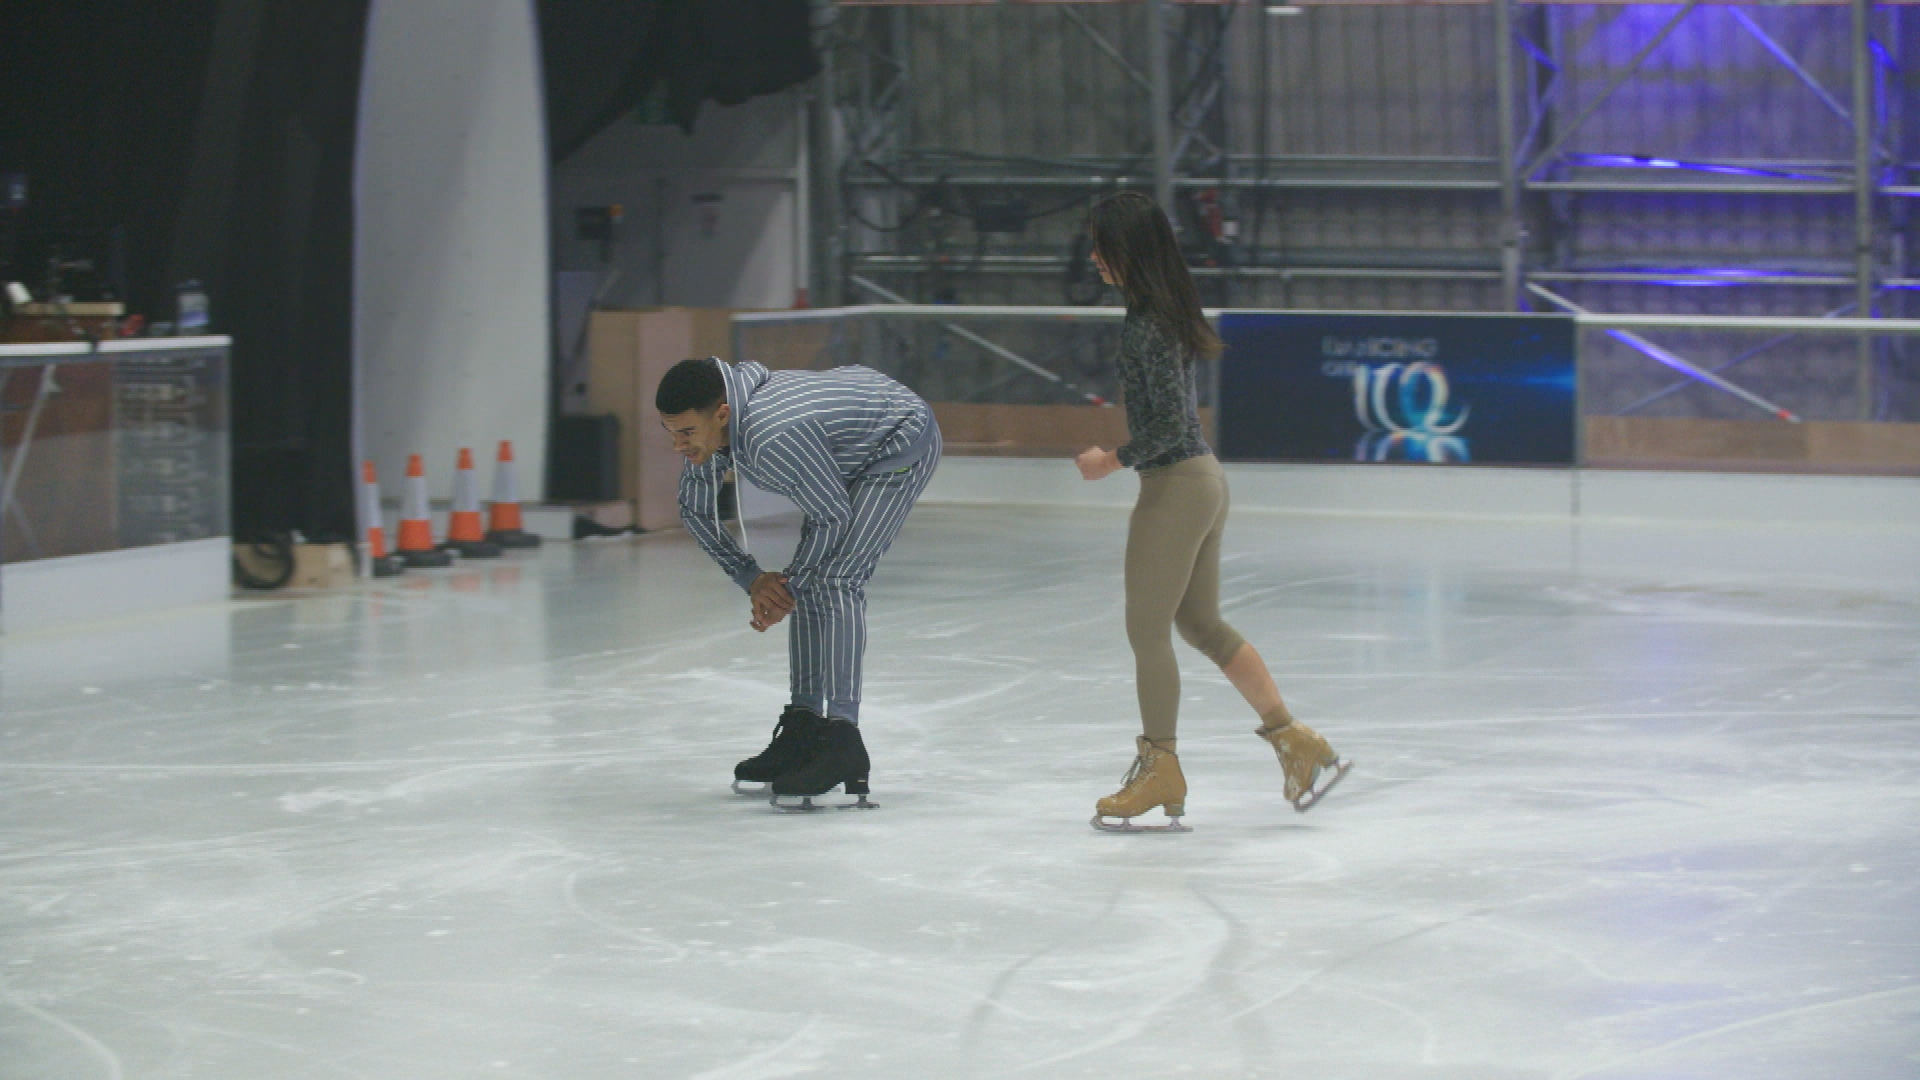 ITV: Dancing on Ice victor already decided?